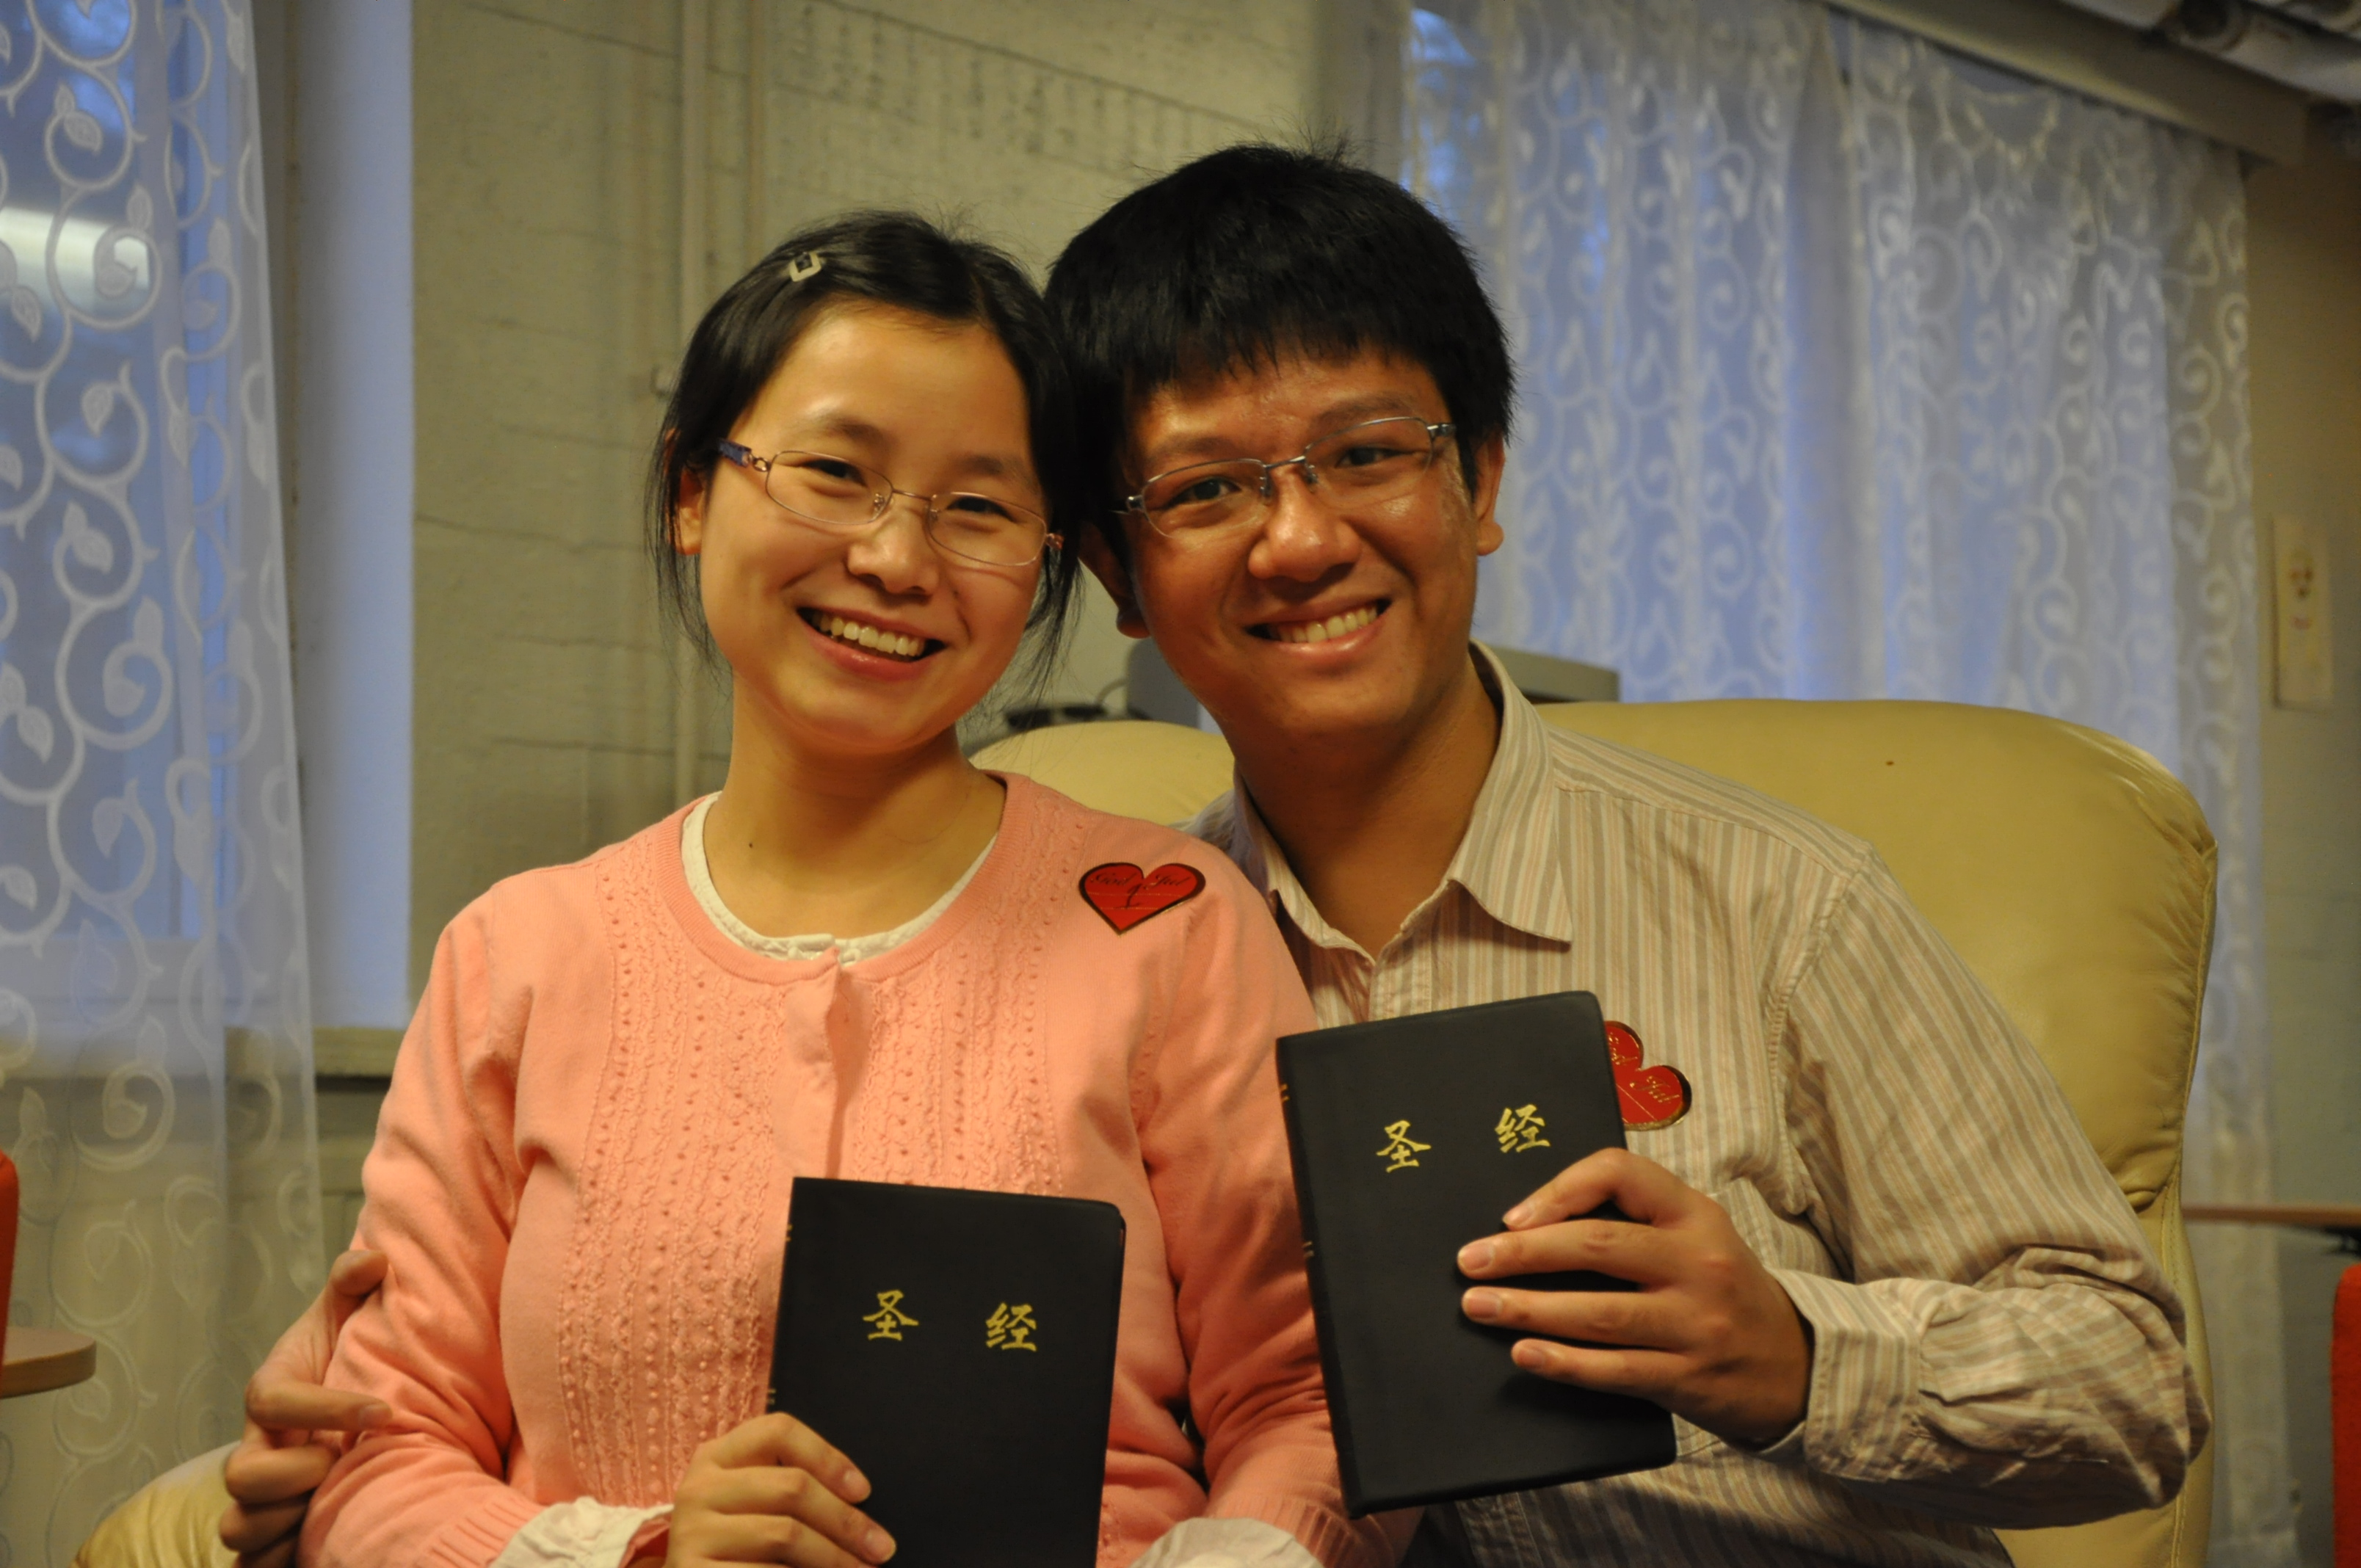 Alongside the rising trend of affiliating to institutional religion for Chinese people in China, the same pattern seems to be happening in Finland as many newcomers grapple with the new environment in Finland.